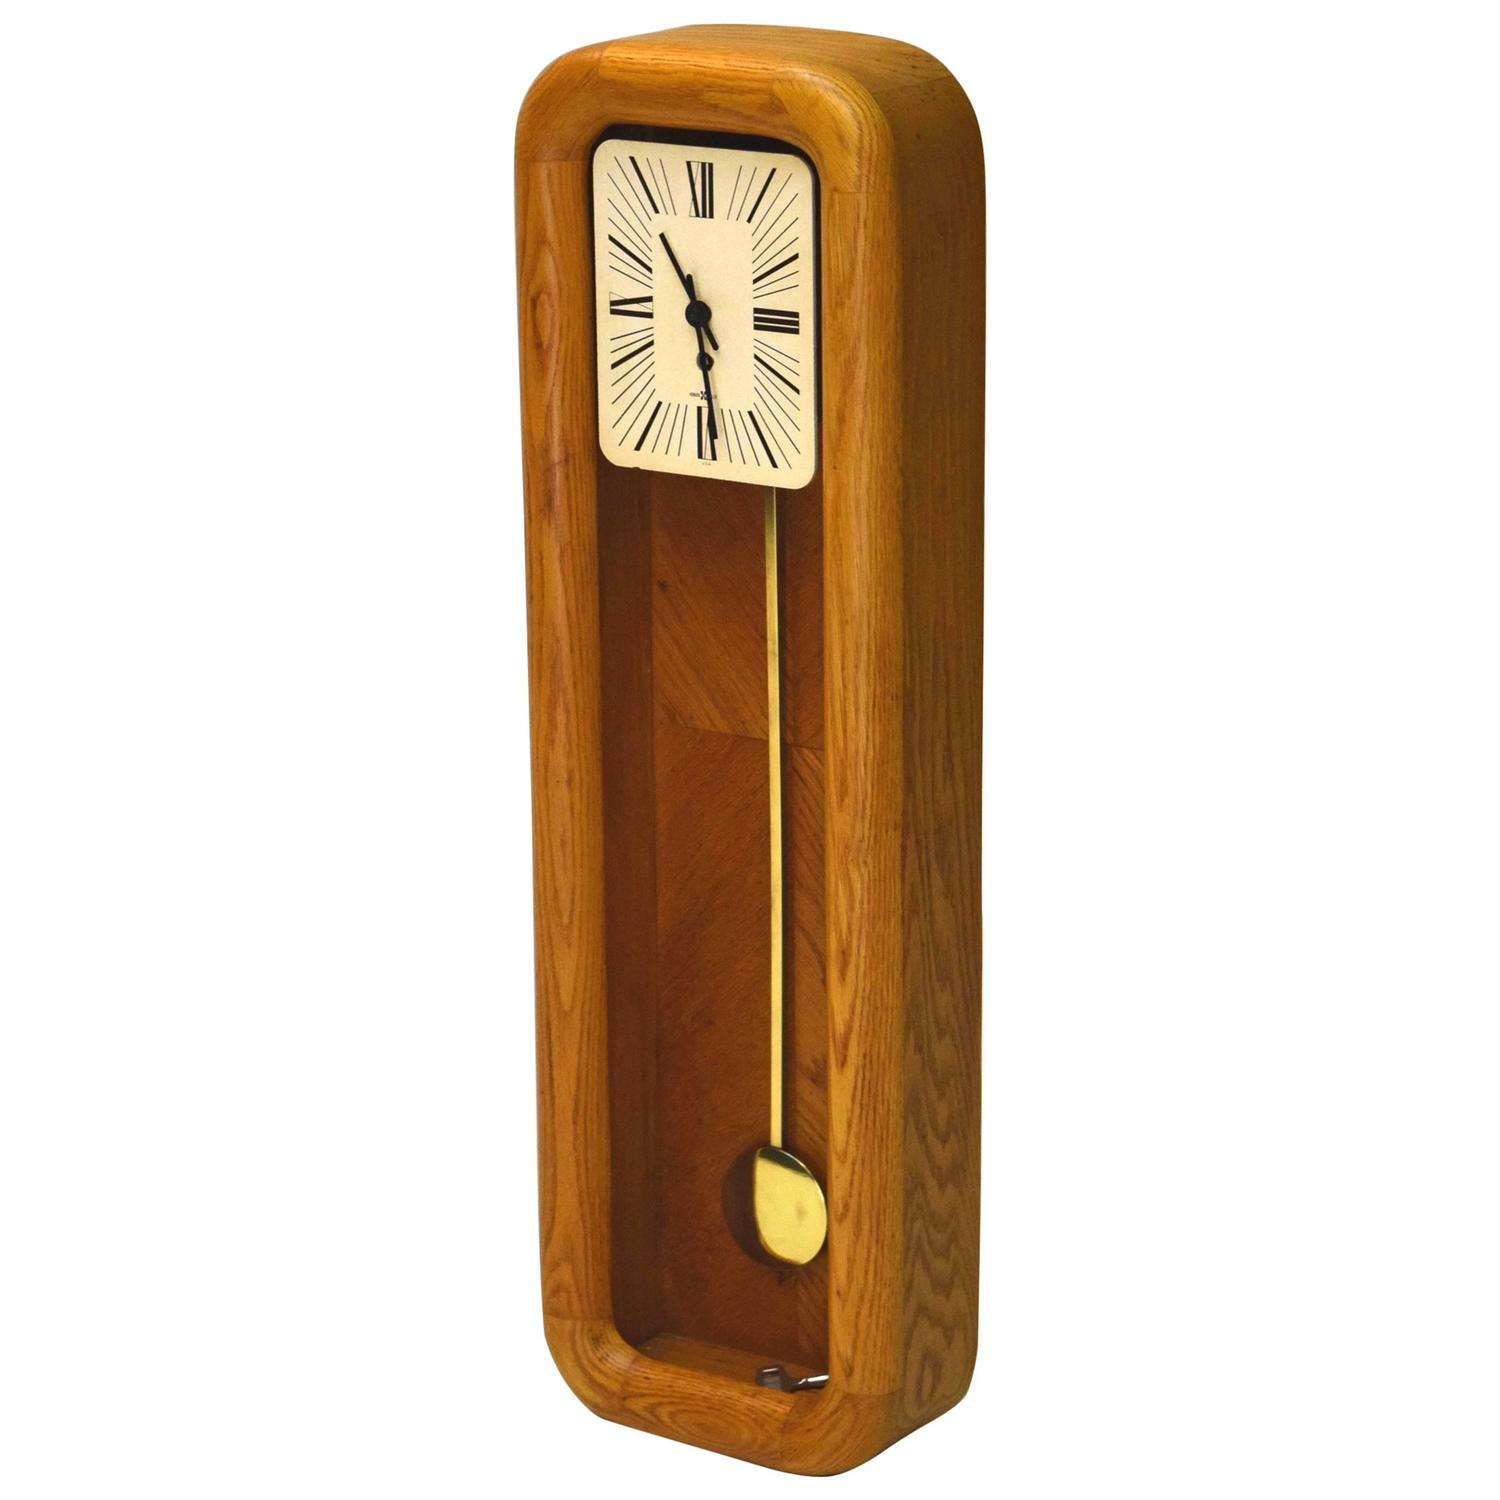 Mantel grandfather clock by arthur umanoff for howard miller for sale at 1stdibs - Wall hanging grandfather clock ...